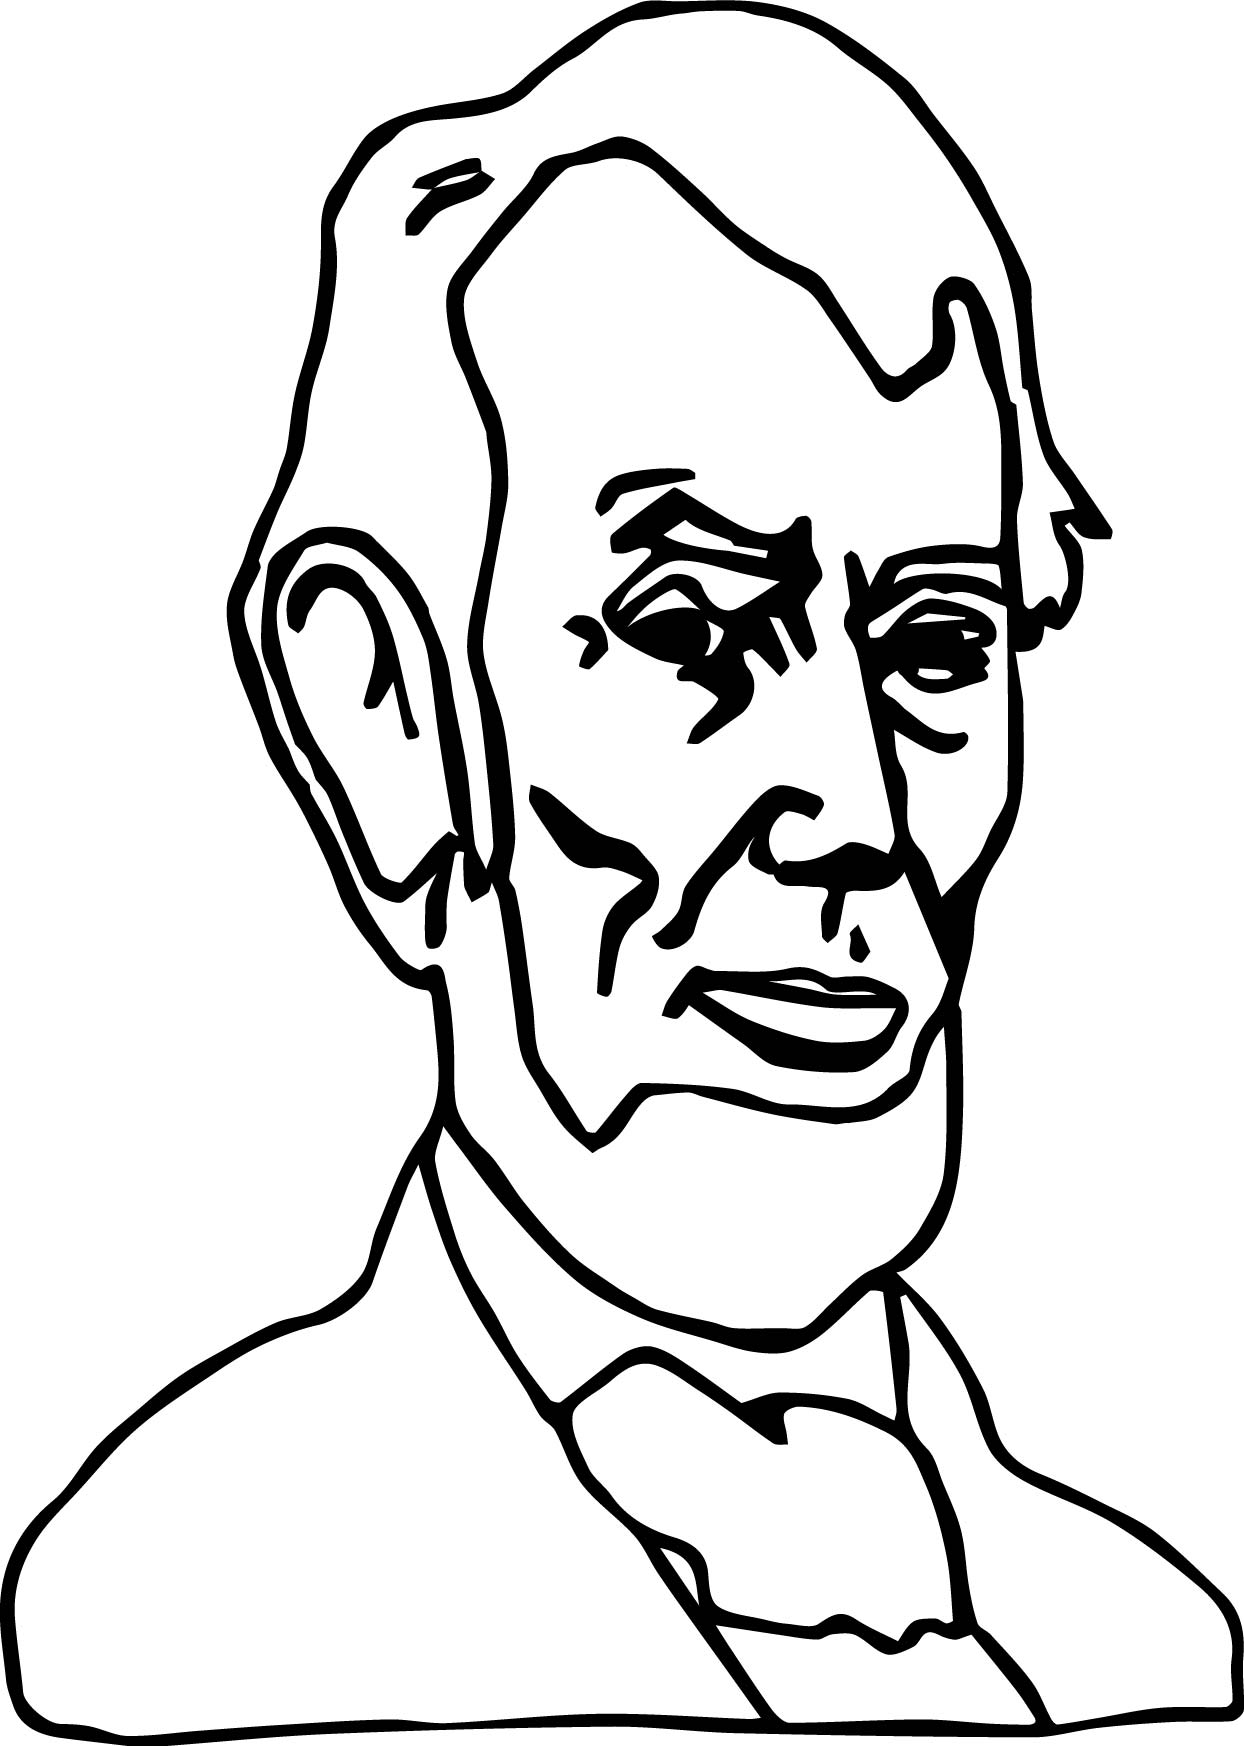 Just abraham lincoln president coloring page for Lincoln coloring pages